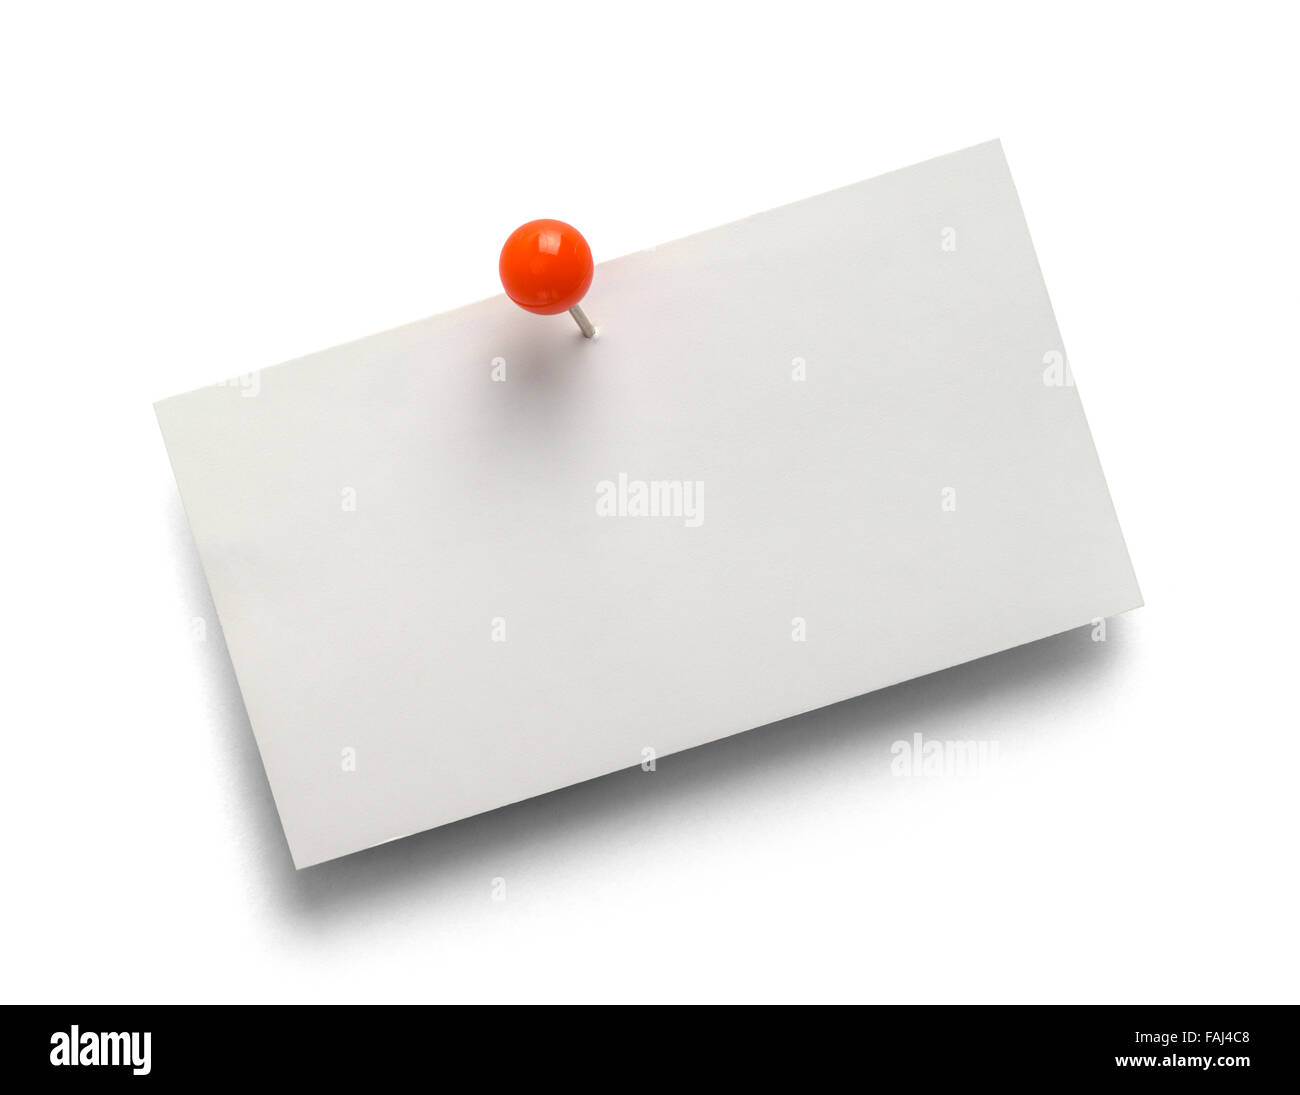 Blank business card with red tack isolated on a white background blank business card with red tack isolated on a white background reheart Gallery